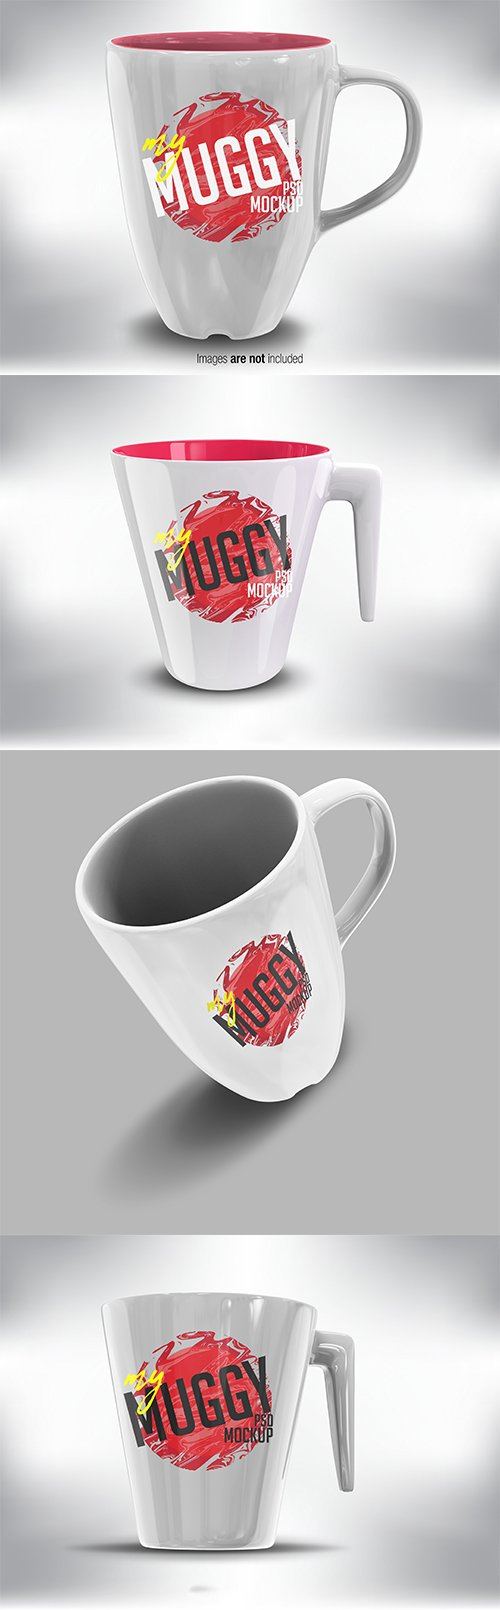 White Mug Mock up Pack